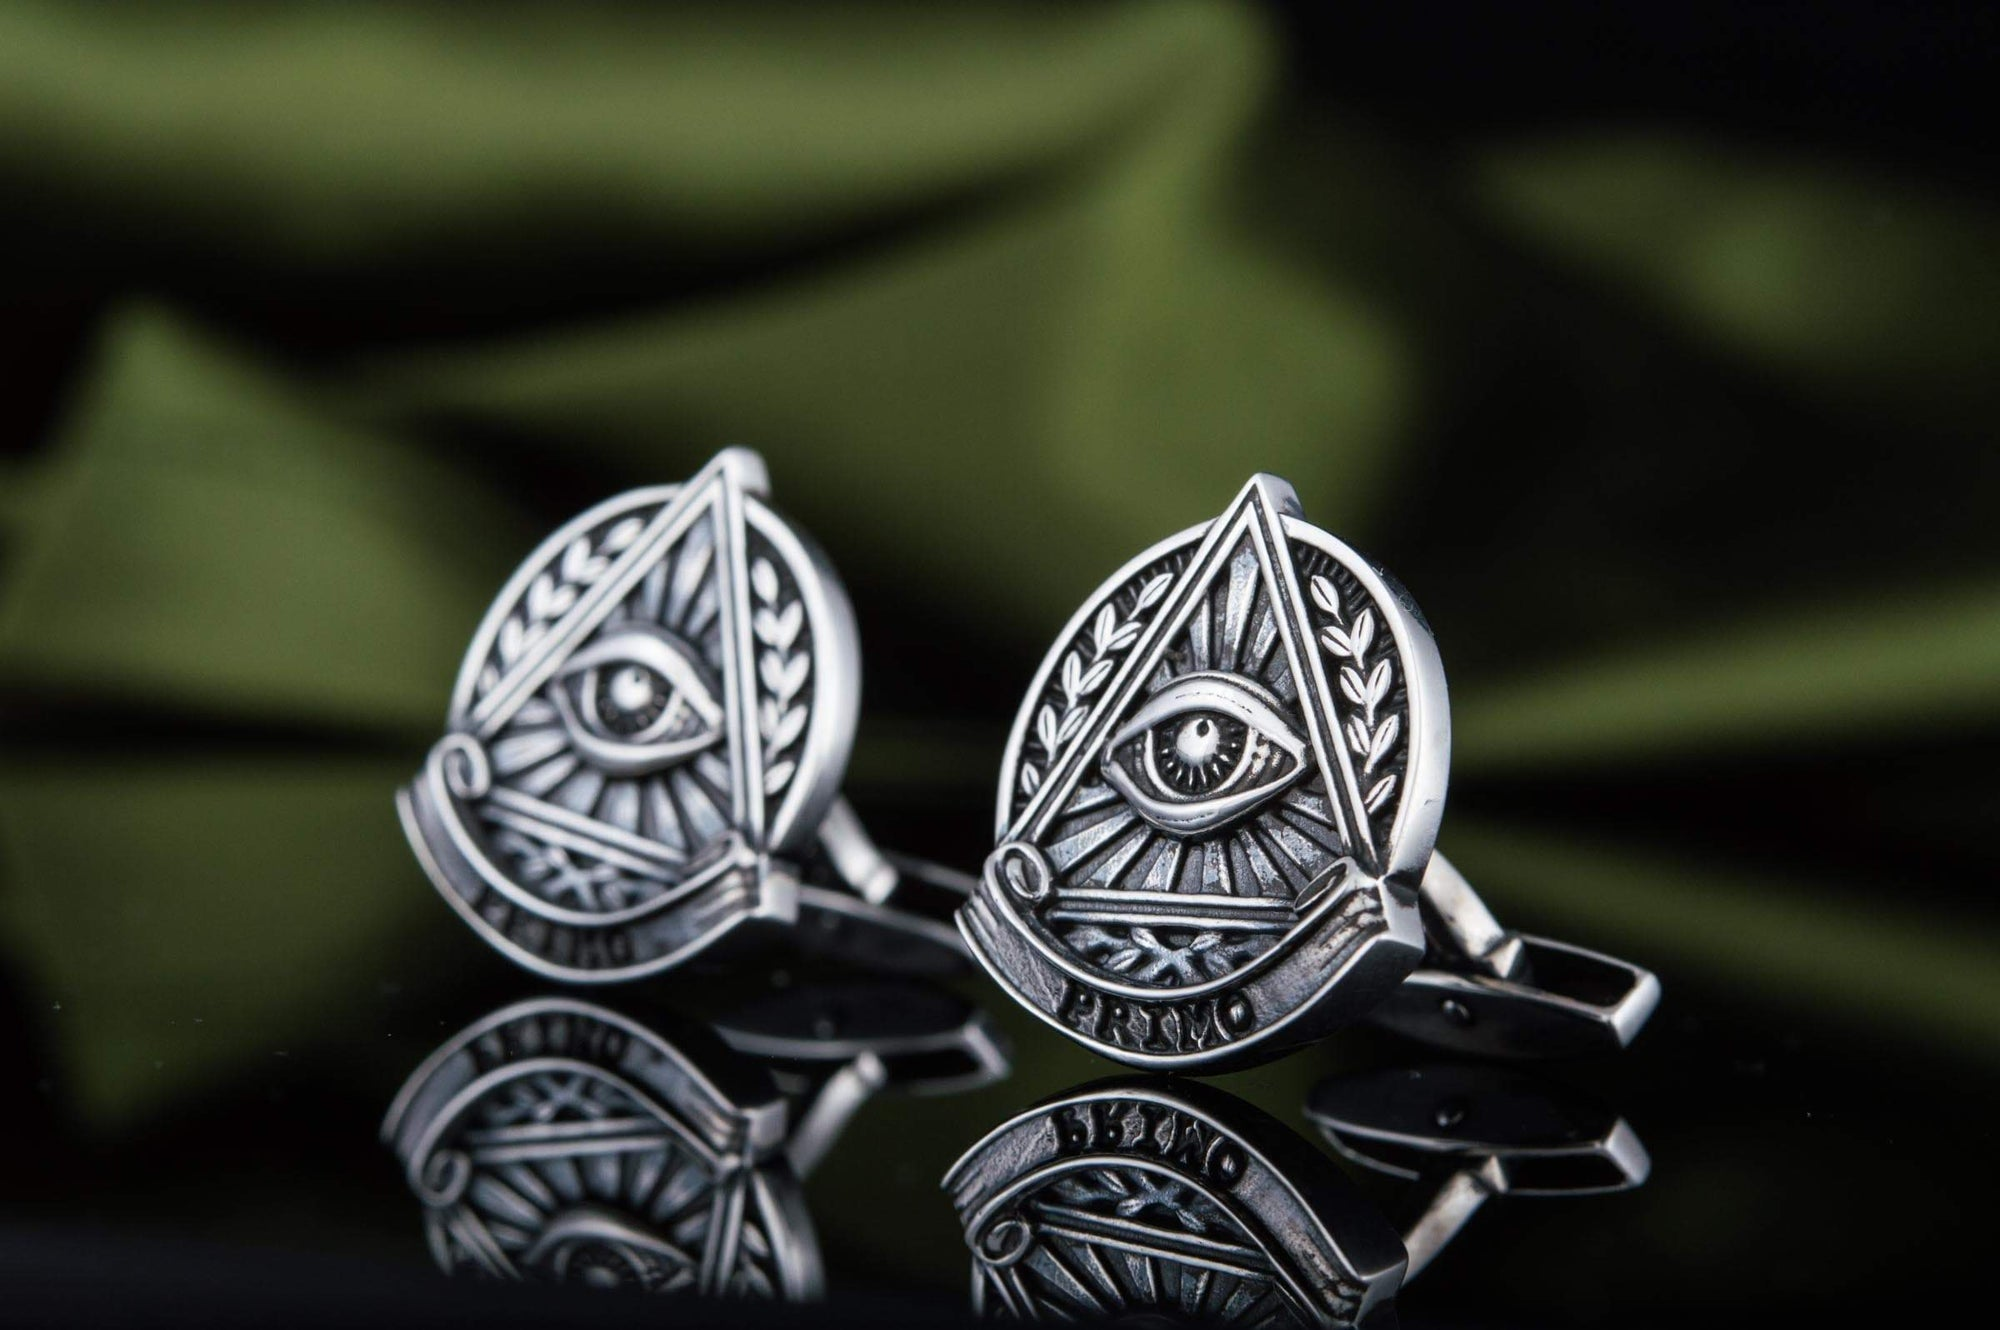 Cufflinks Freemason Eye of Providence Sterling Silver Handmade Cufflinks Ancient Treasures Ancientreasures Viking Odin Thor Mjolnir Celtic Ancient Egypt Norse Norse Mythology